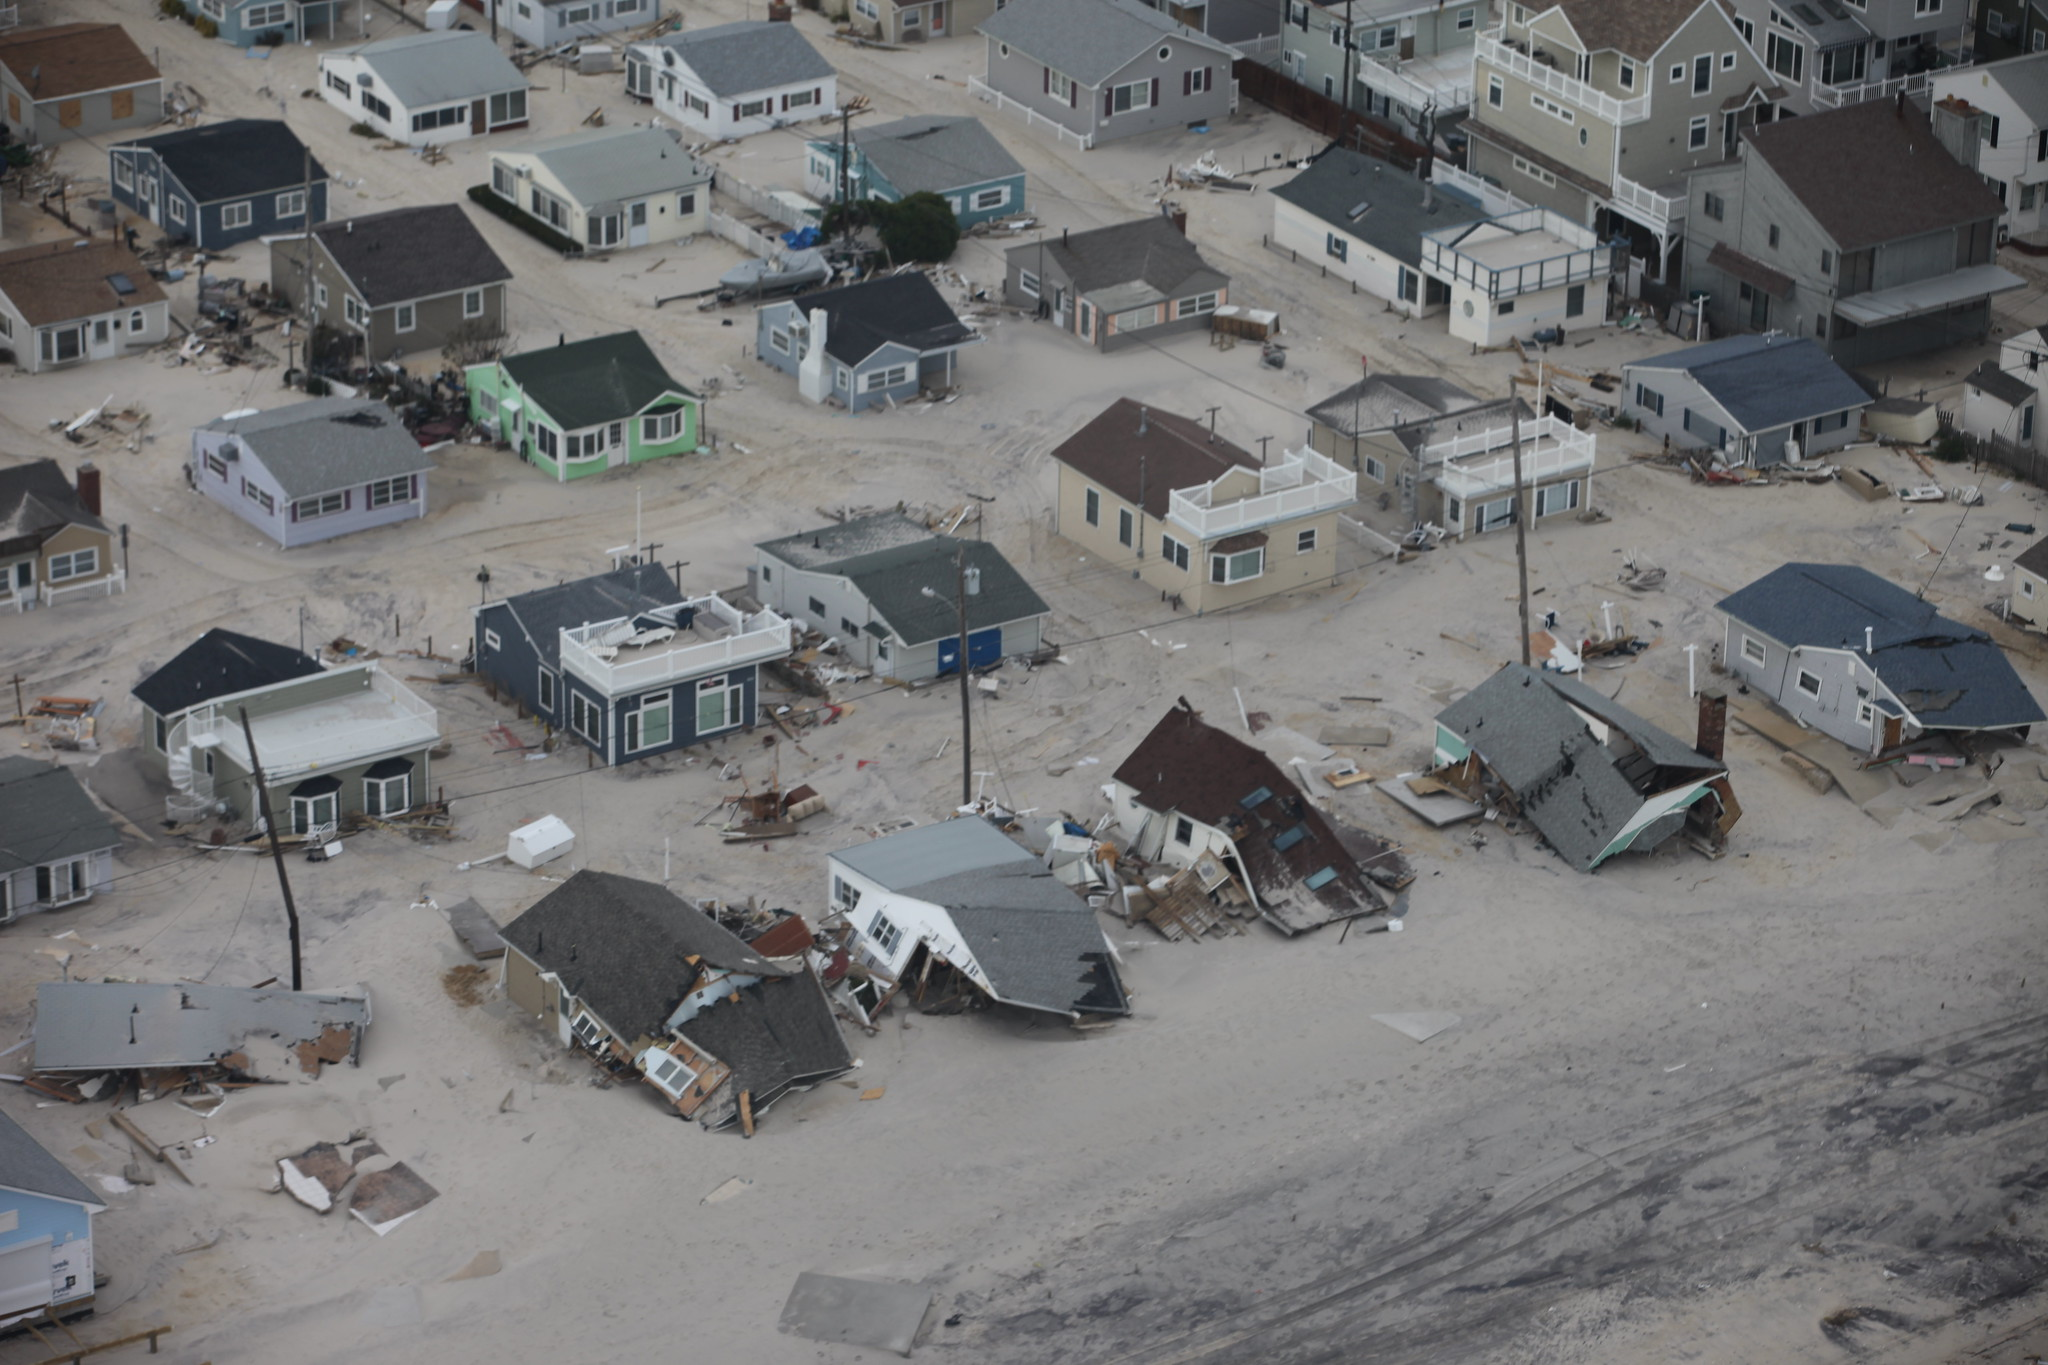 Aerial photo of damaged homes along New Jersey shore after Hurricane Sandy